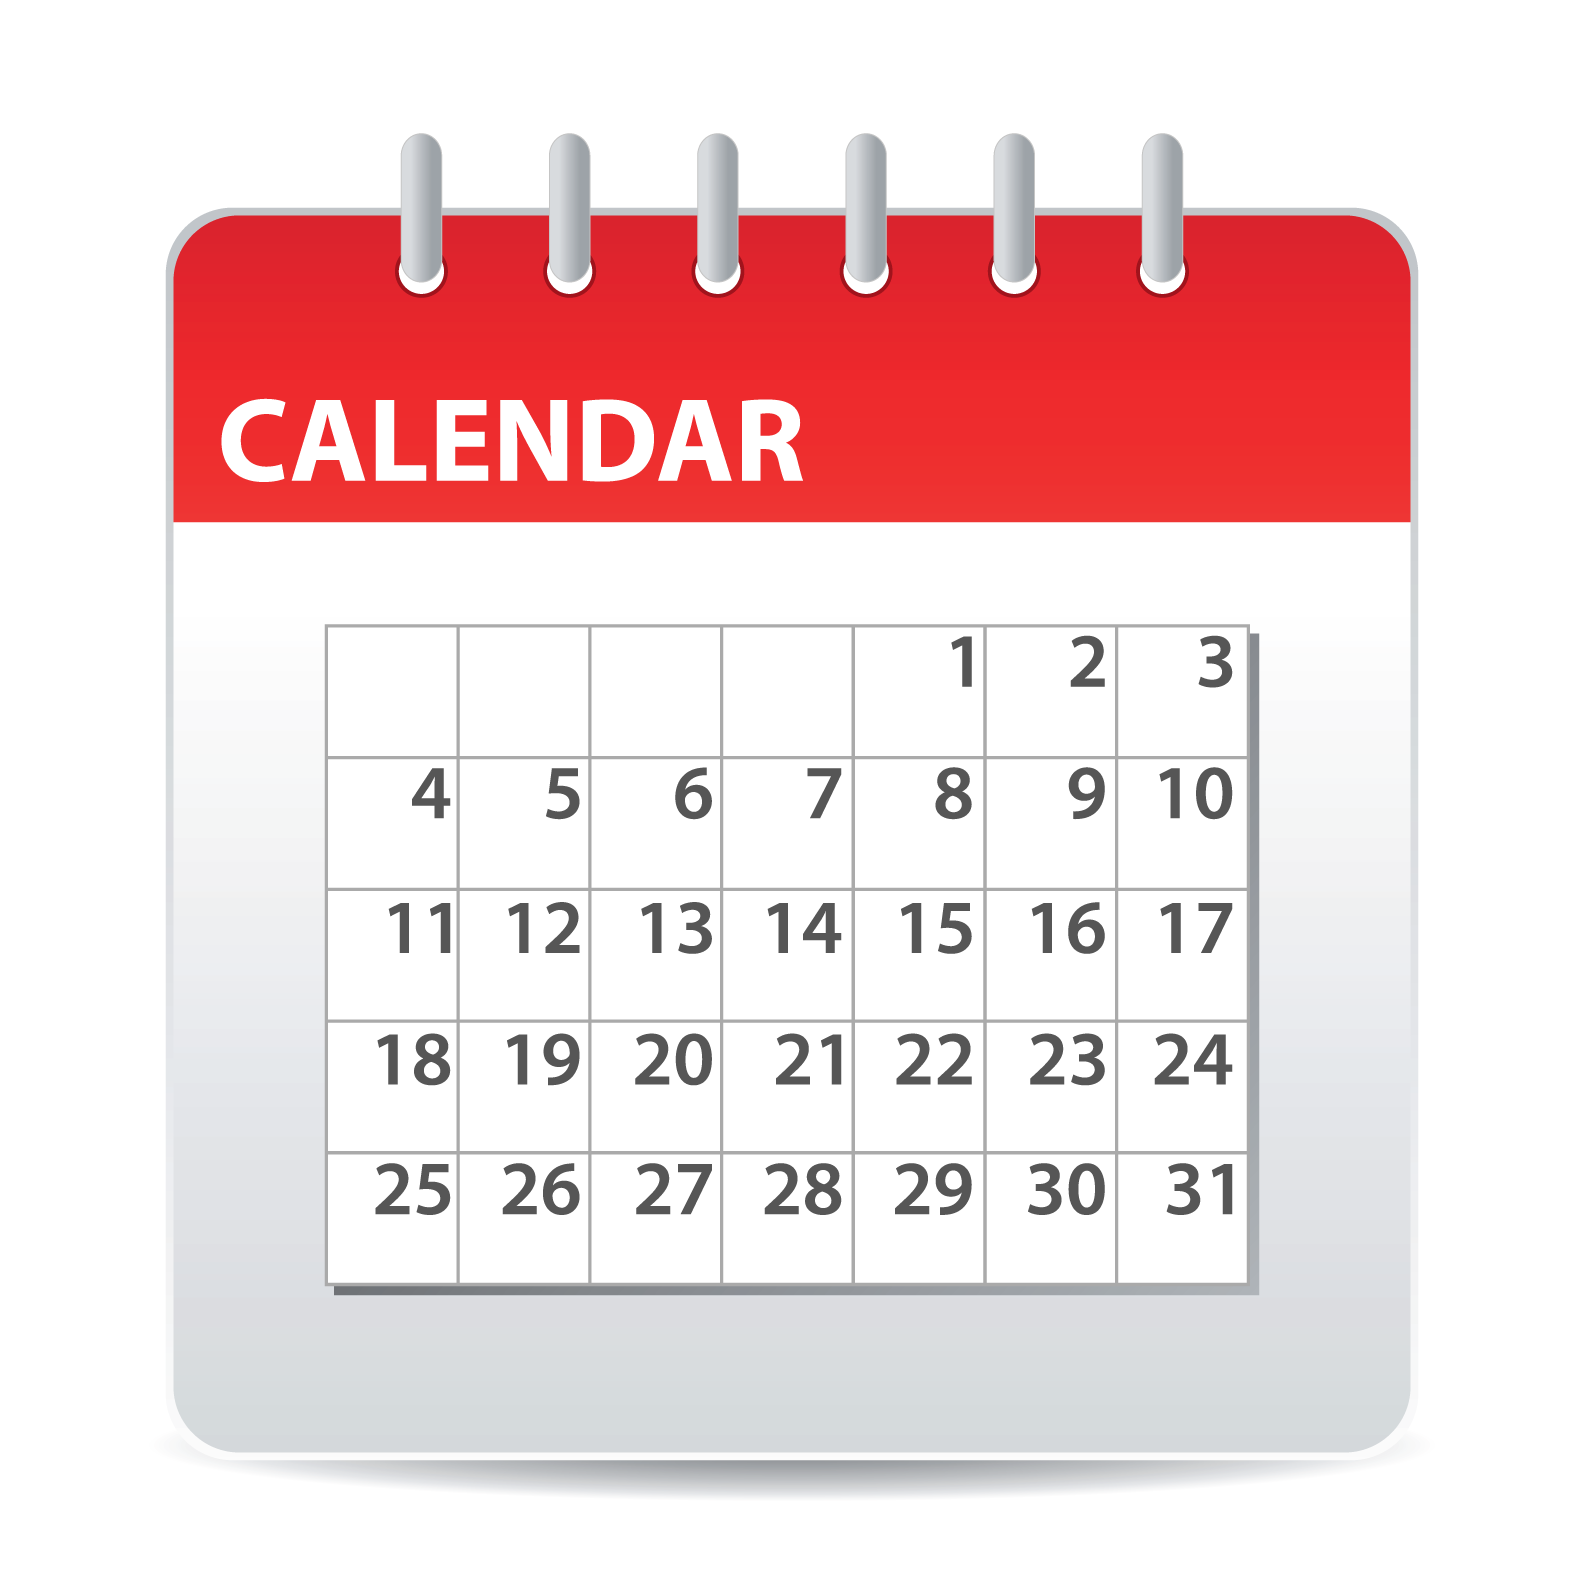 Calendar Background Designs Png : Calendar download free png icons and